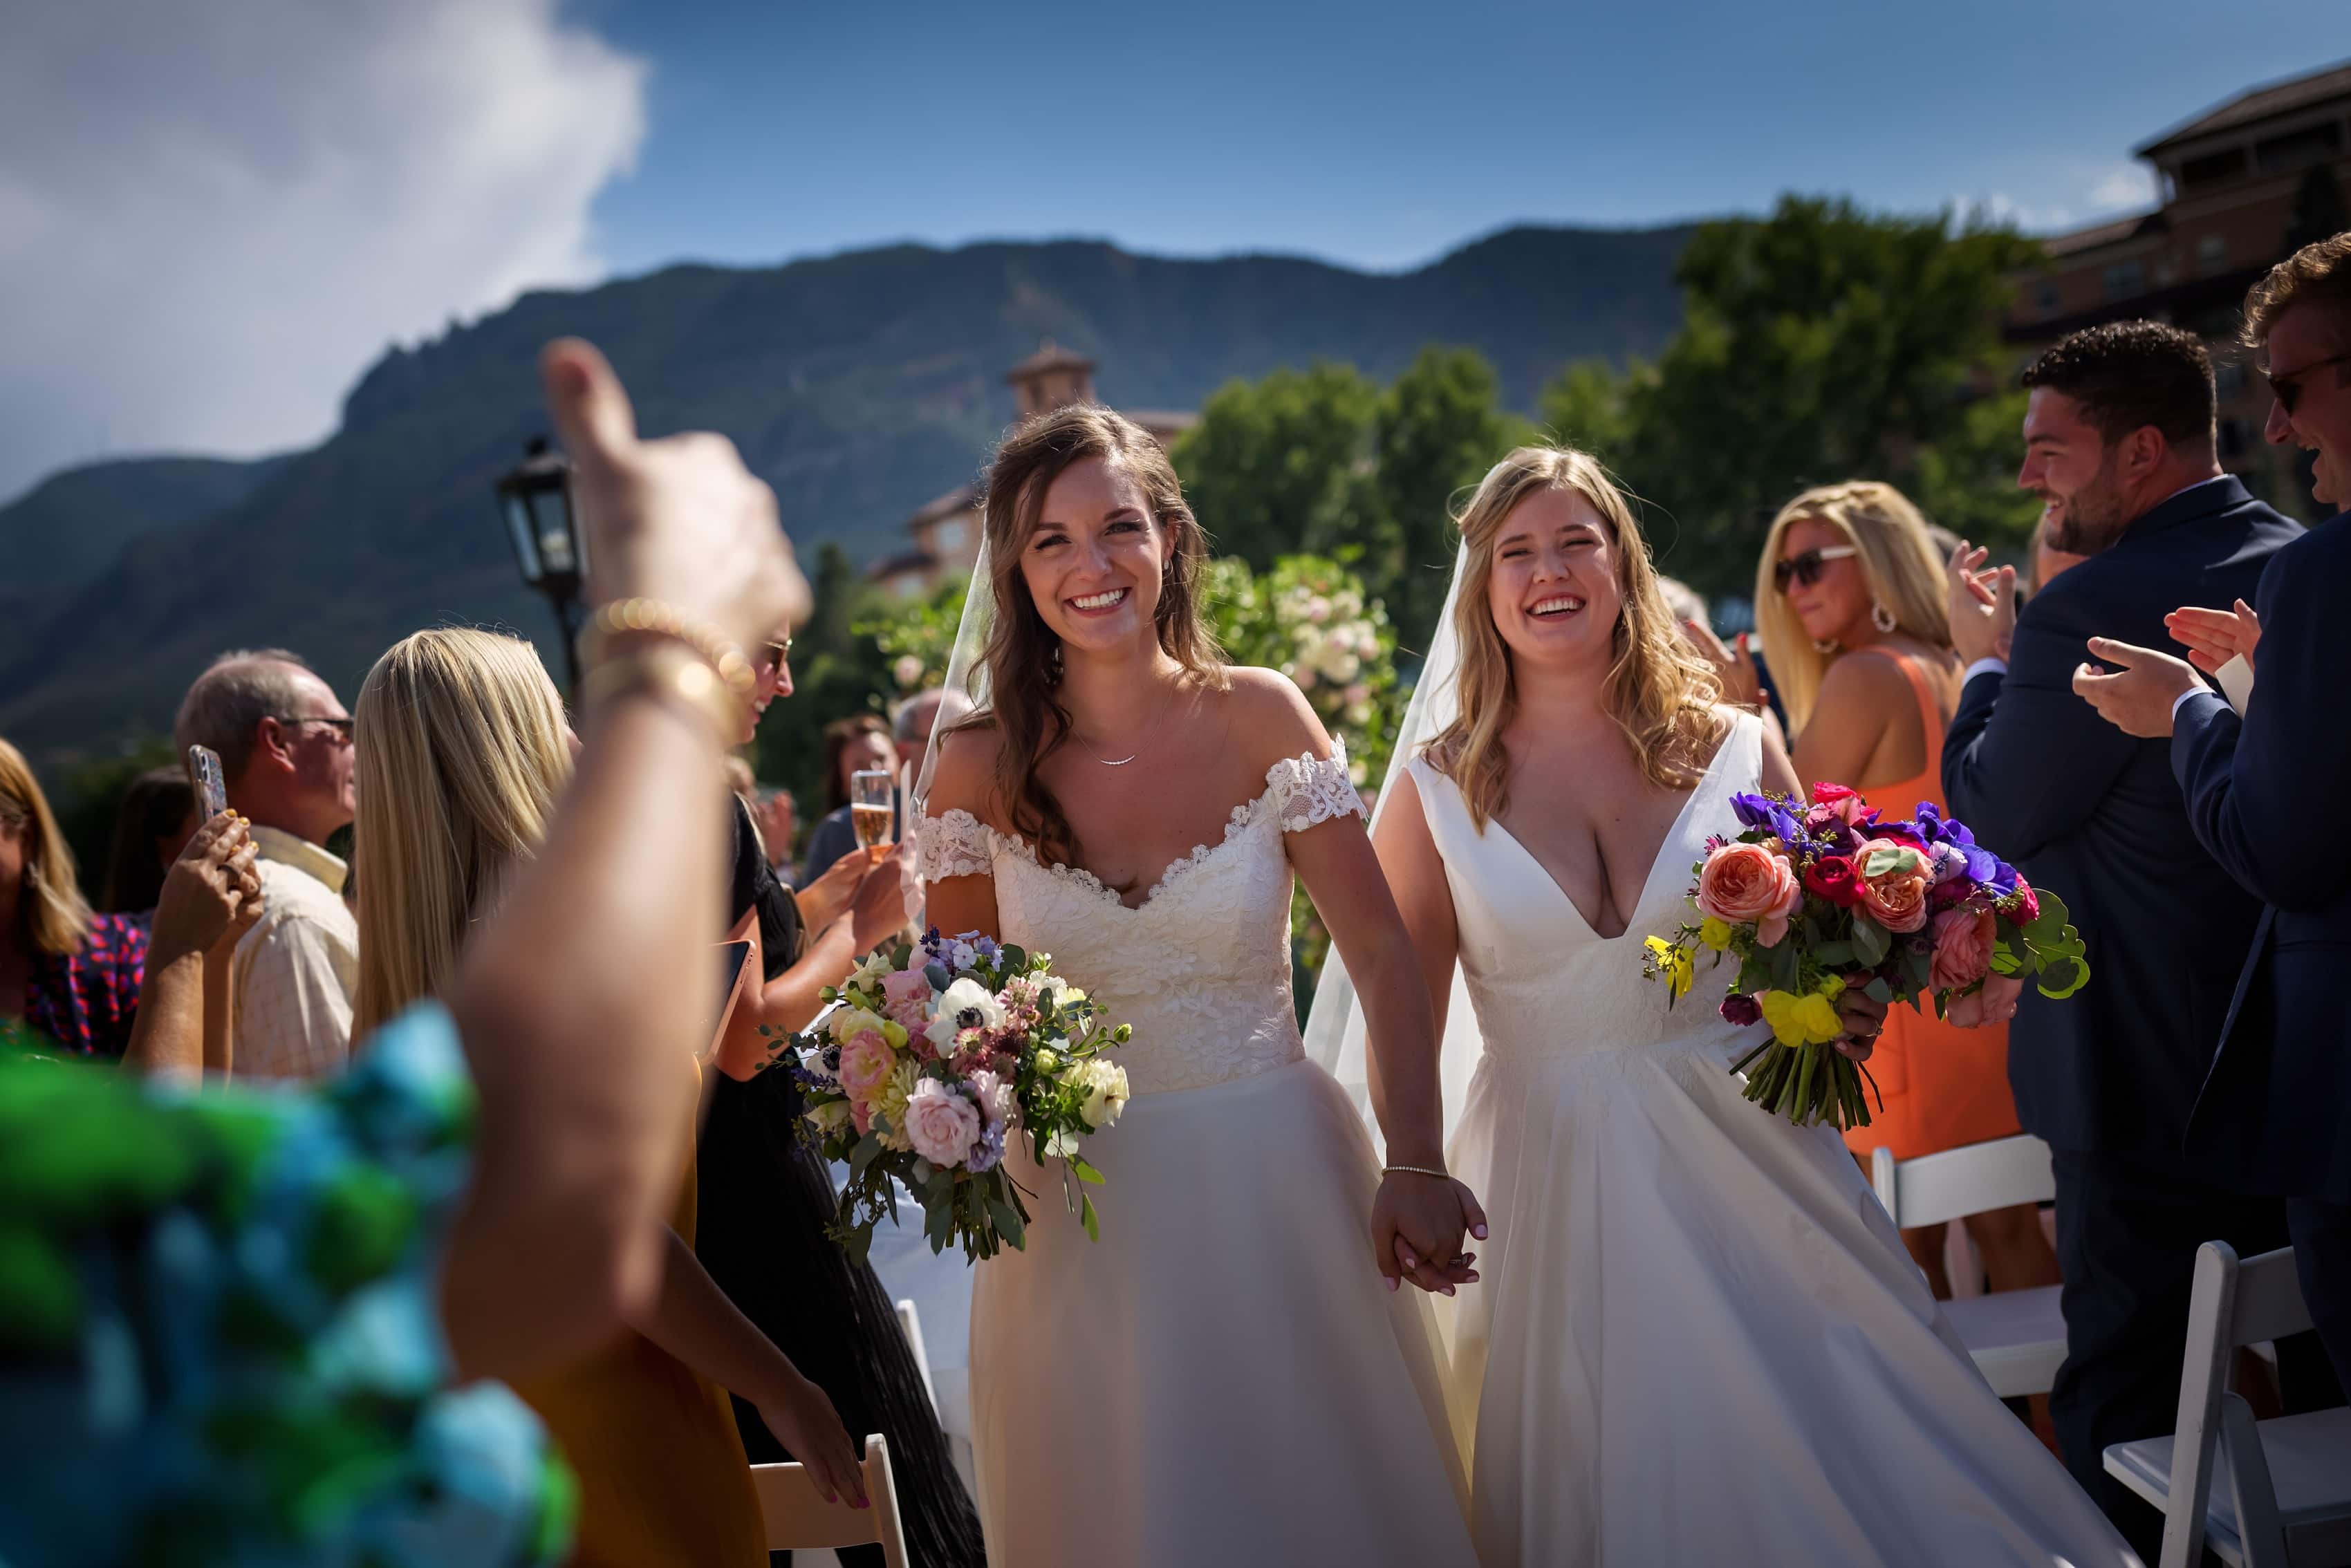 two brides walk down the aisle after their wedding ceremony at The Broadmoor in Colorado Springs, Colorado